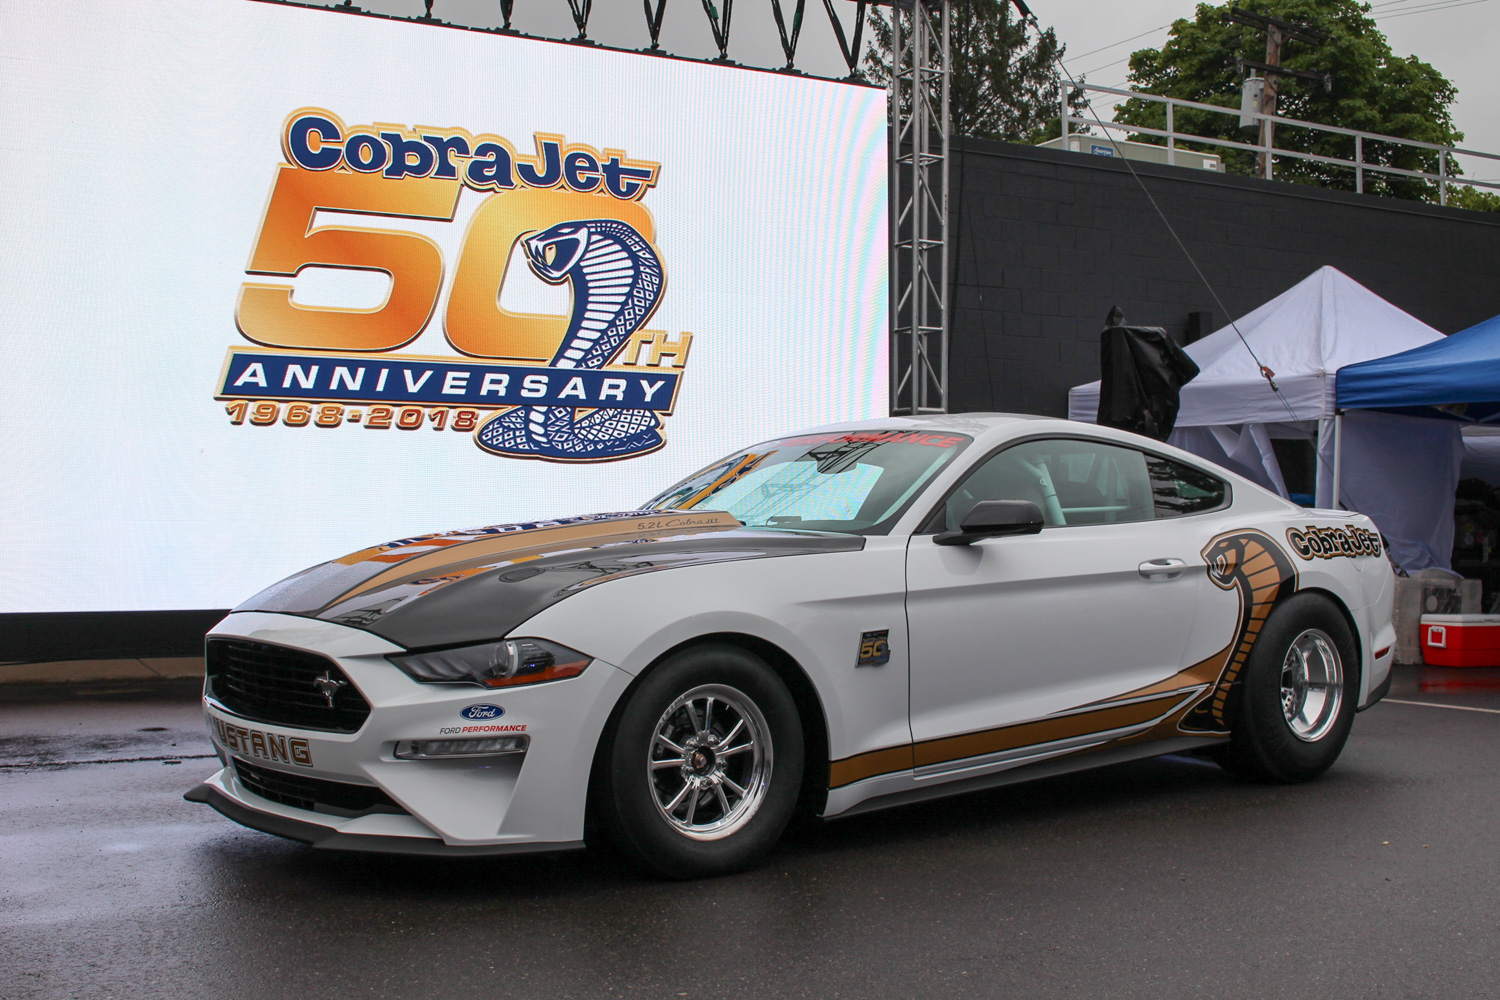 2018 Ford Mustang Cobra Jet reveal front